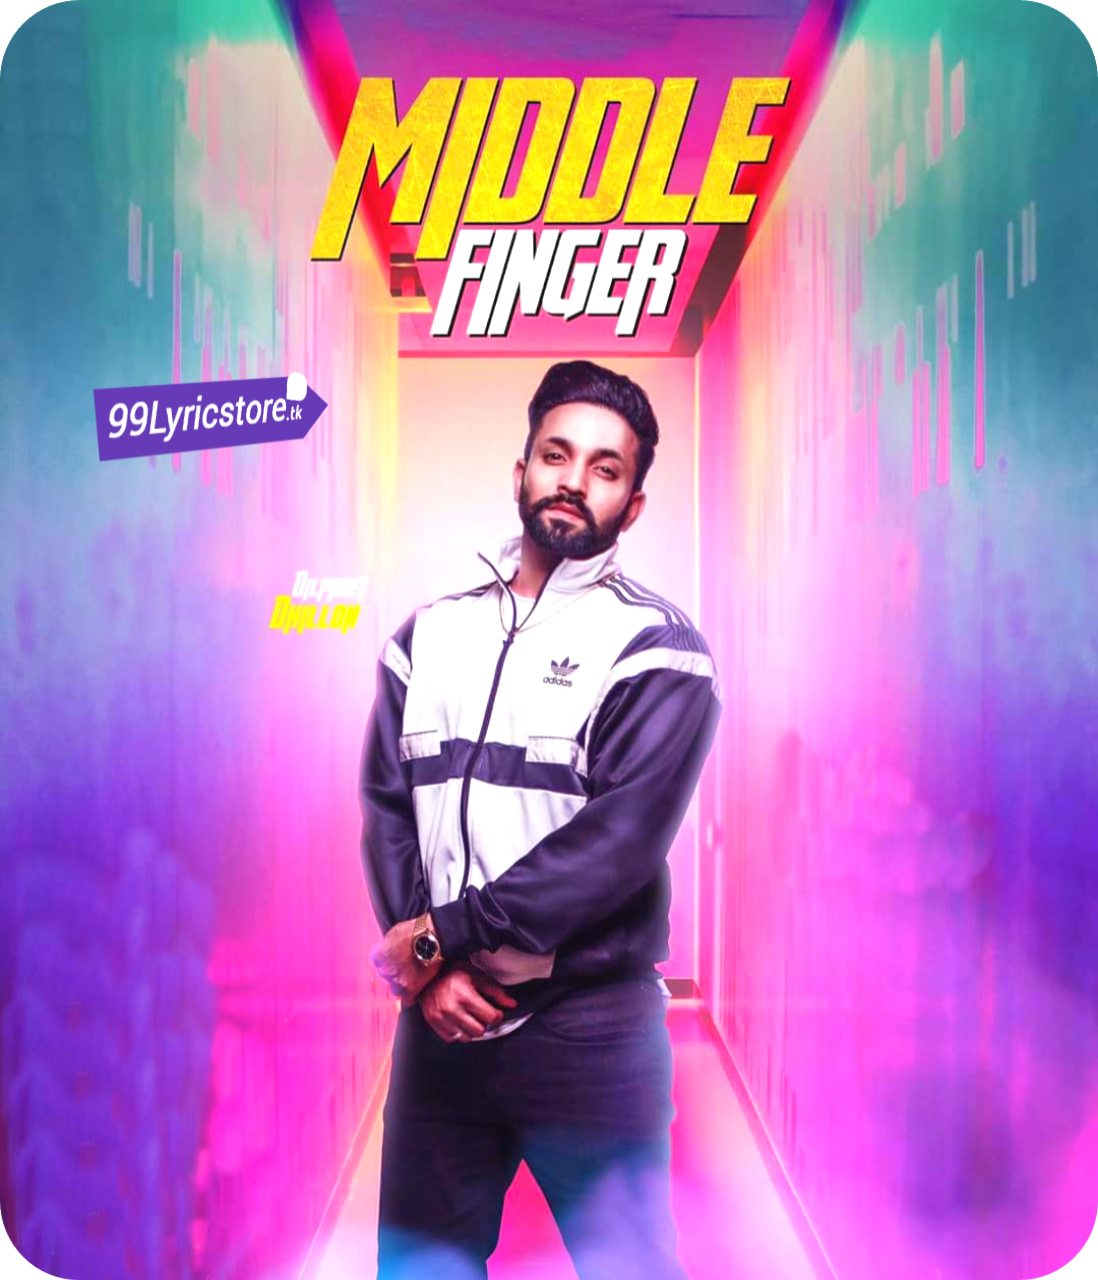 Dilpreet Dhillon Song Lyrics, Middle finger Punjabi Song Lyrics, Dilpreet Dhillon Punjabi Song Lyrics 2018, Middle finger Song Images, Latest Punjabi Song Lyrics 2018, Dilpreet Dhillon Punjabi Song images